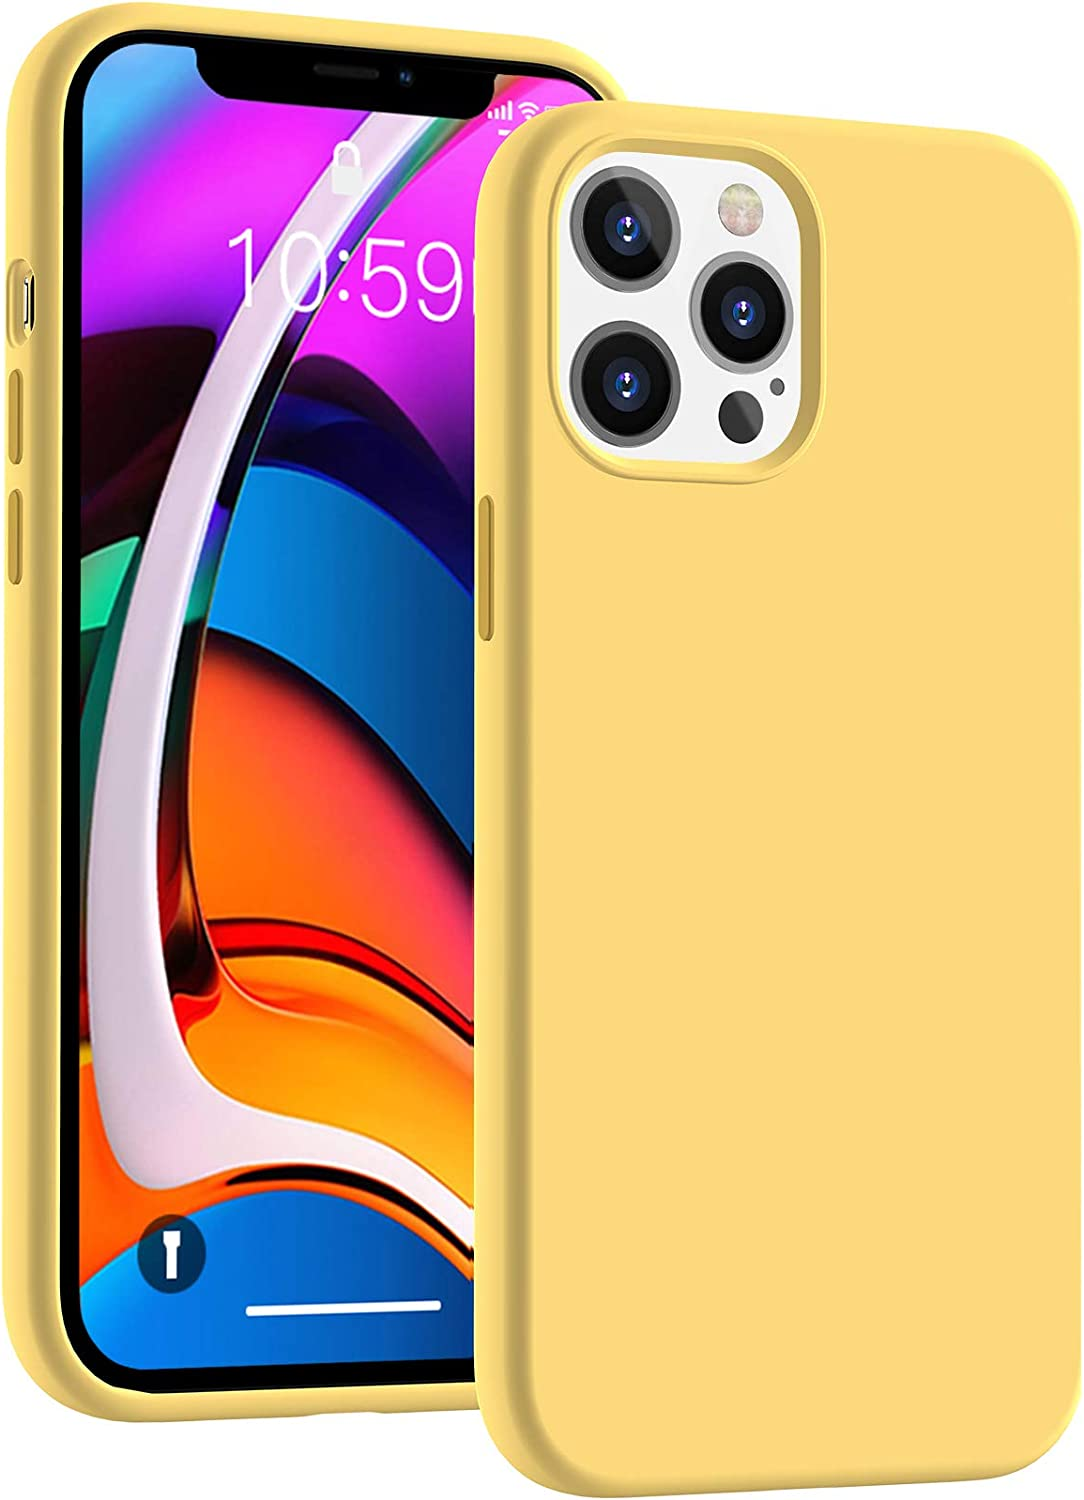 CUCELL Compatible with iPhone 12 Pro Max Case 6.7 inch(2020),Liquid Silicone Gel Rubber Full Body Protection Cover Shockproof Durable Drop Proof Shell-Yellow